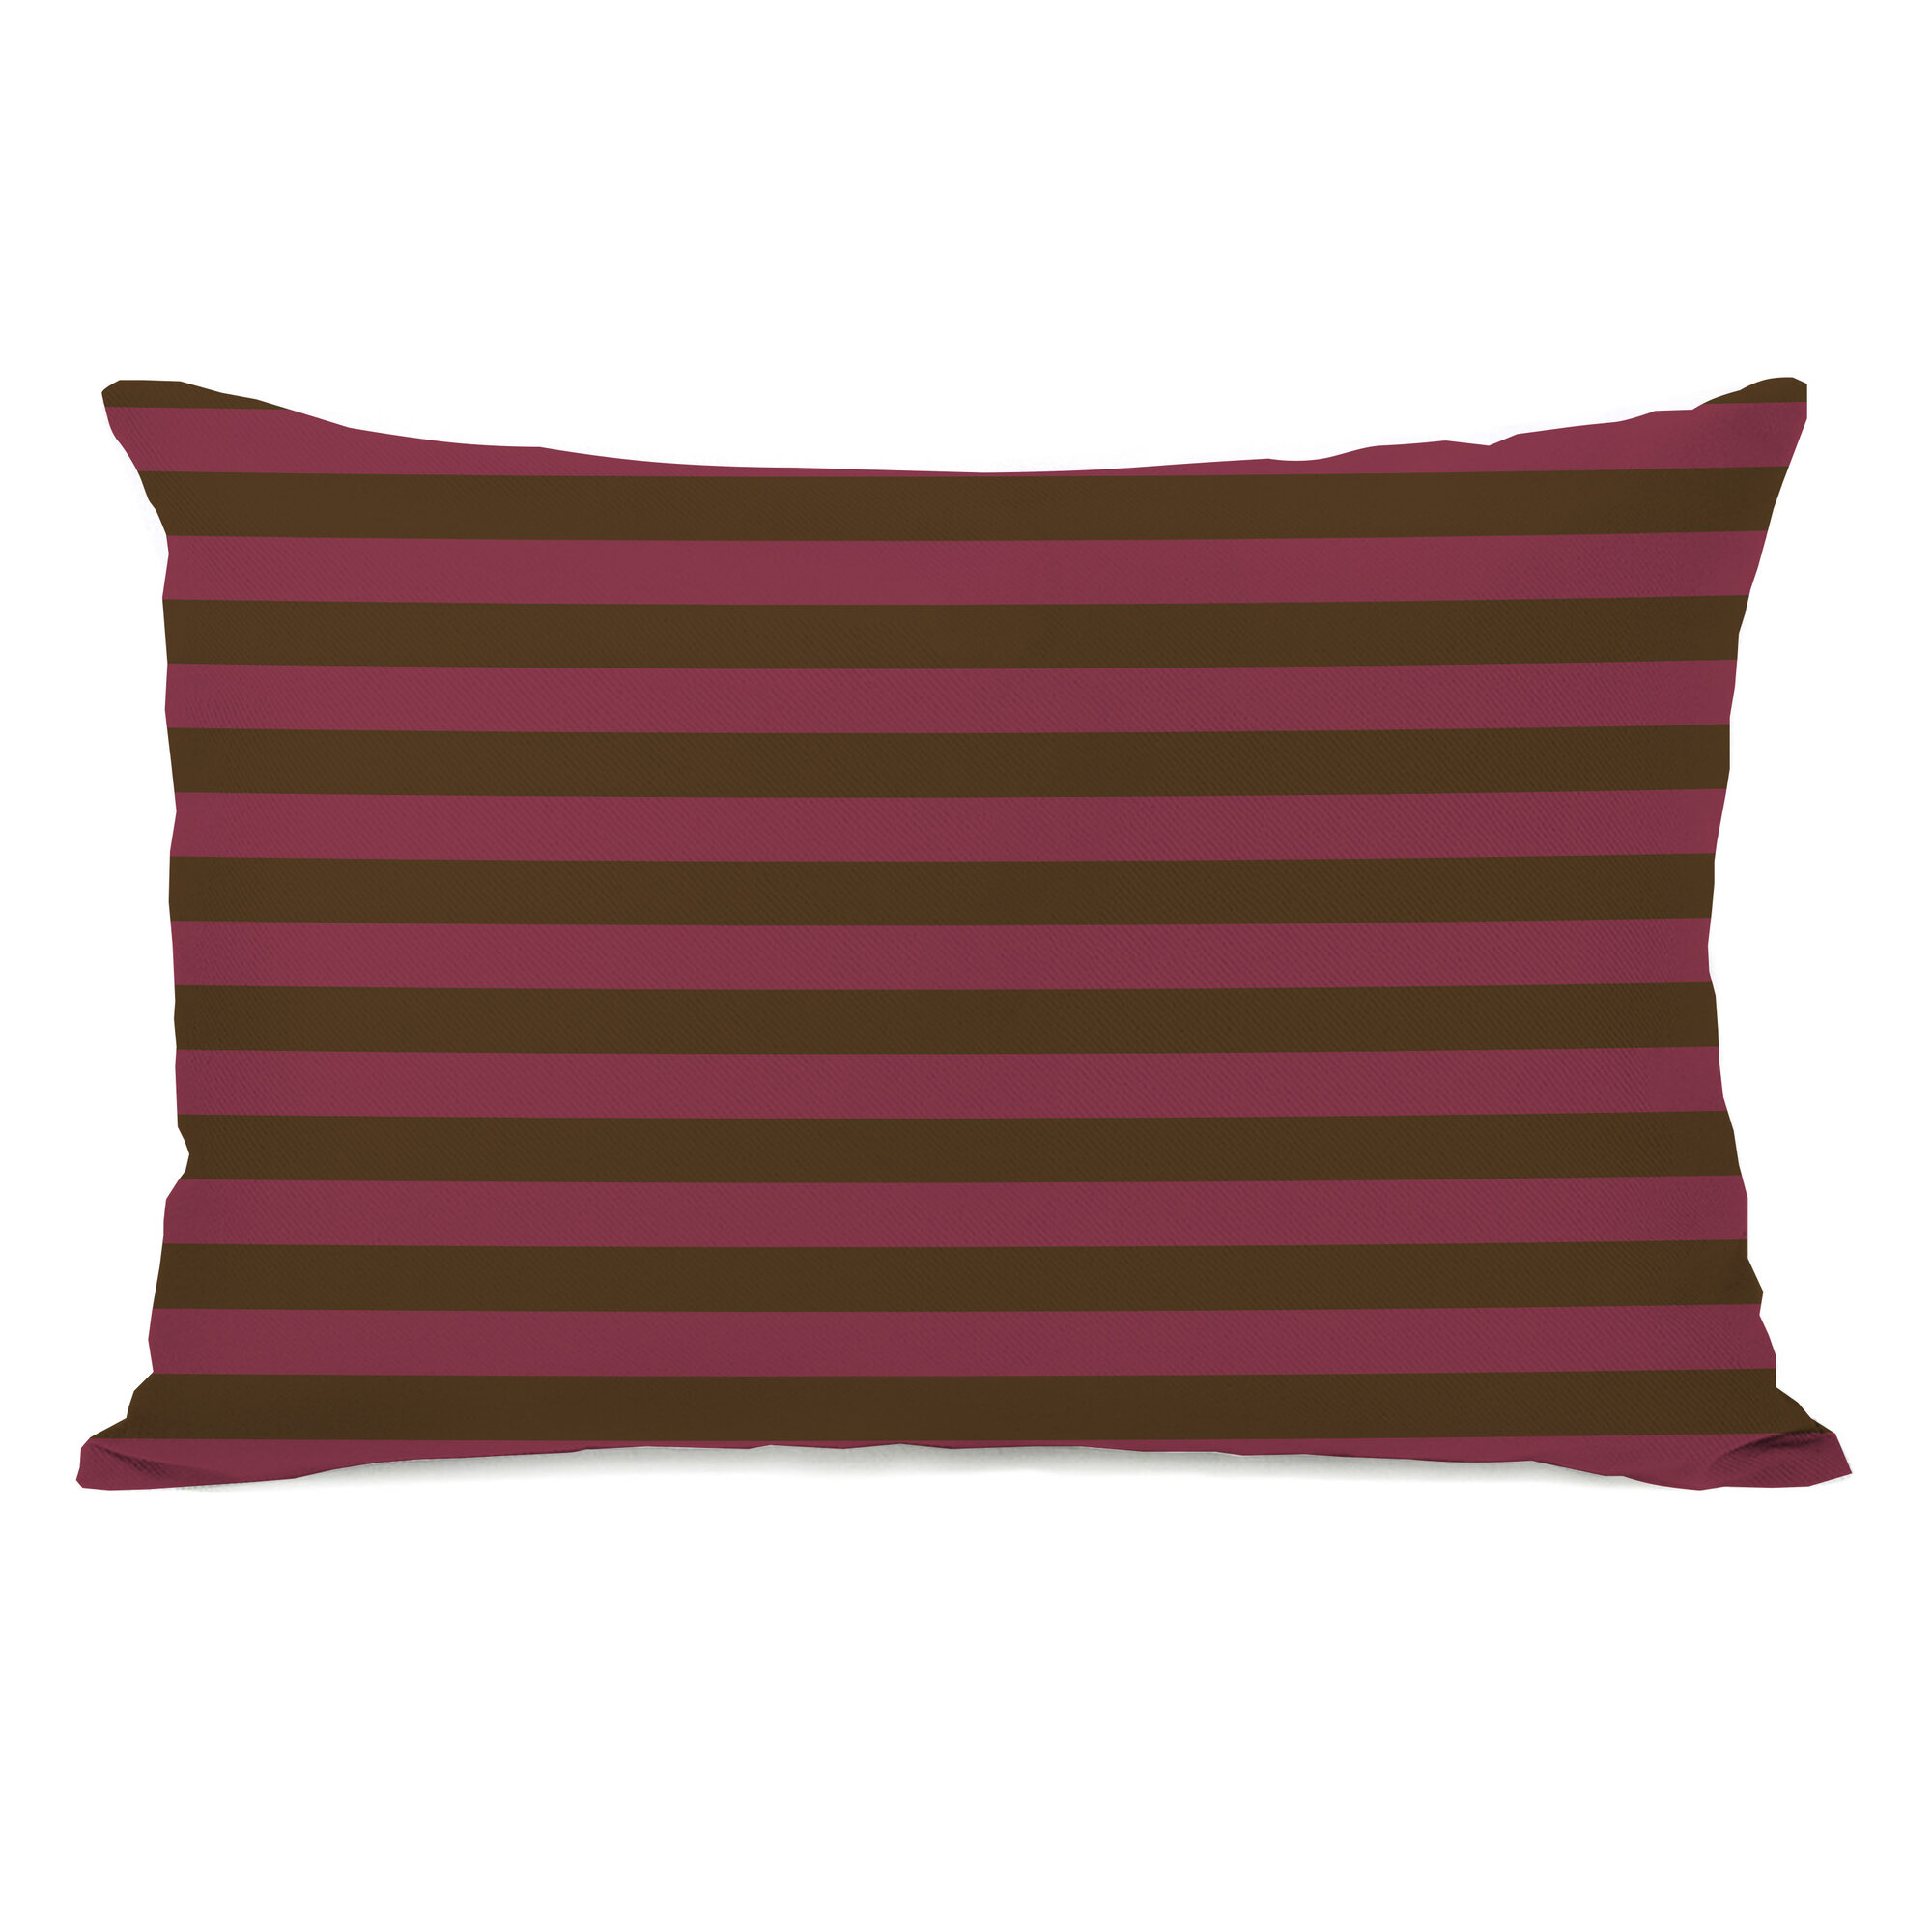 Orvis Maidstone Striped Denim Cotton Standard Pillow Sham Red Ivory Cover Case